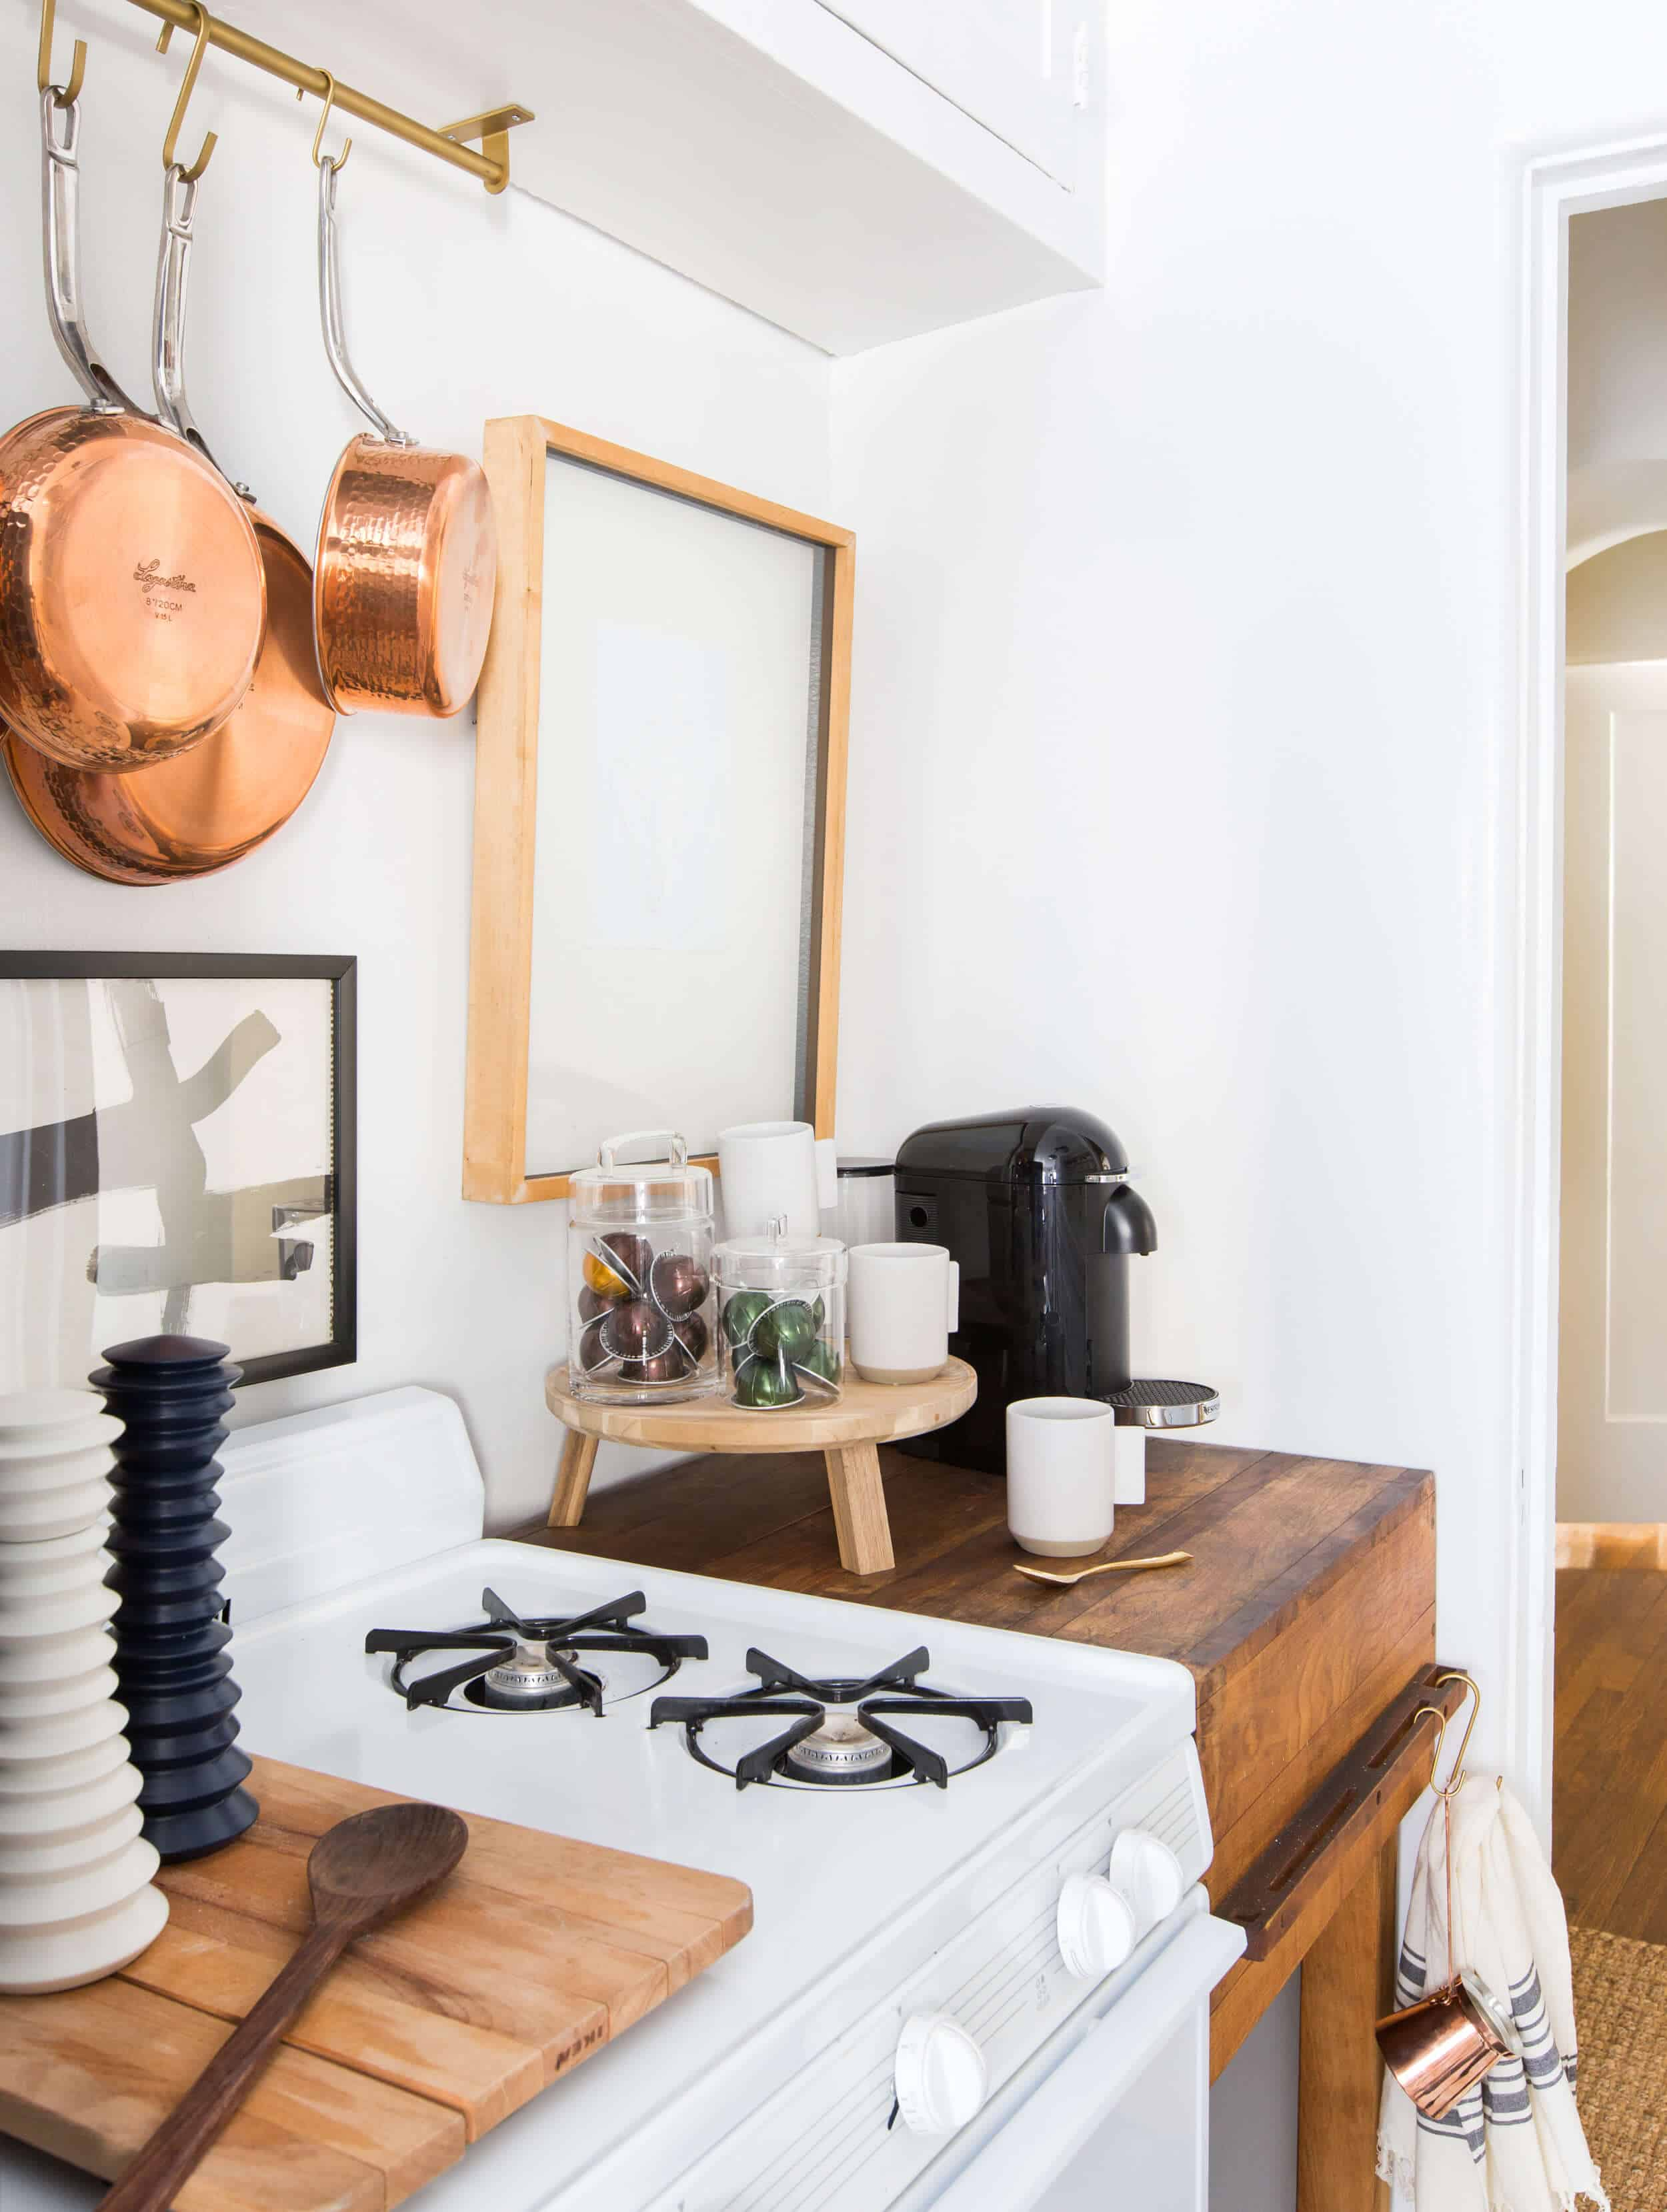 Brady-Tolbert_Emily-Henderson_Black-and-White-Kitchen_Vintage_Apartment-Refresh_Wood_Brass_Checkered-Floor_Copper-Pots_Eclectic_Glam_Modern_Traditional_27